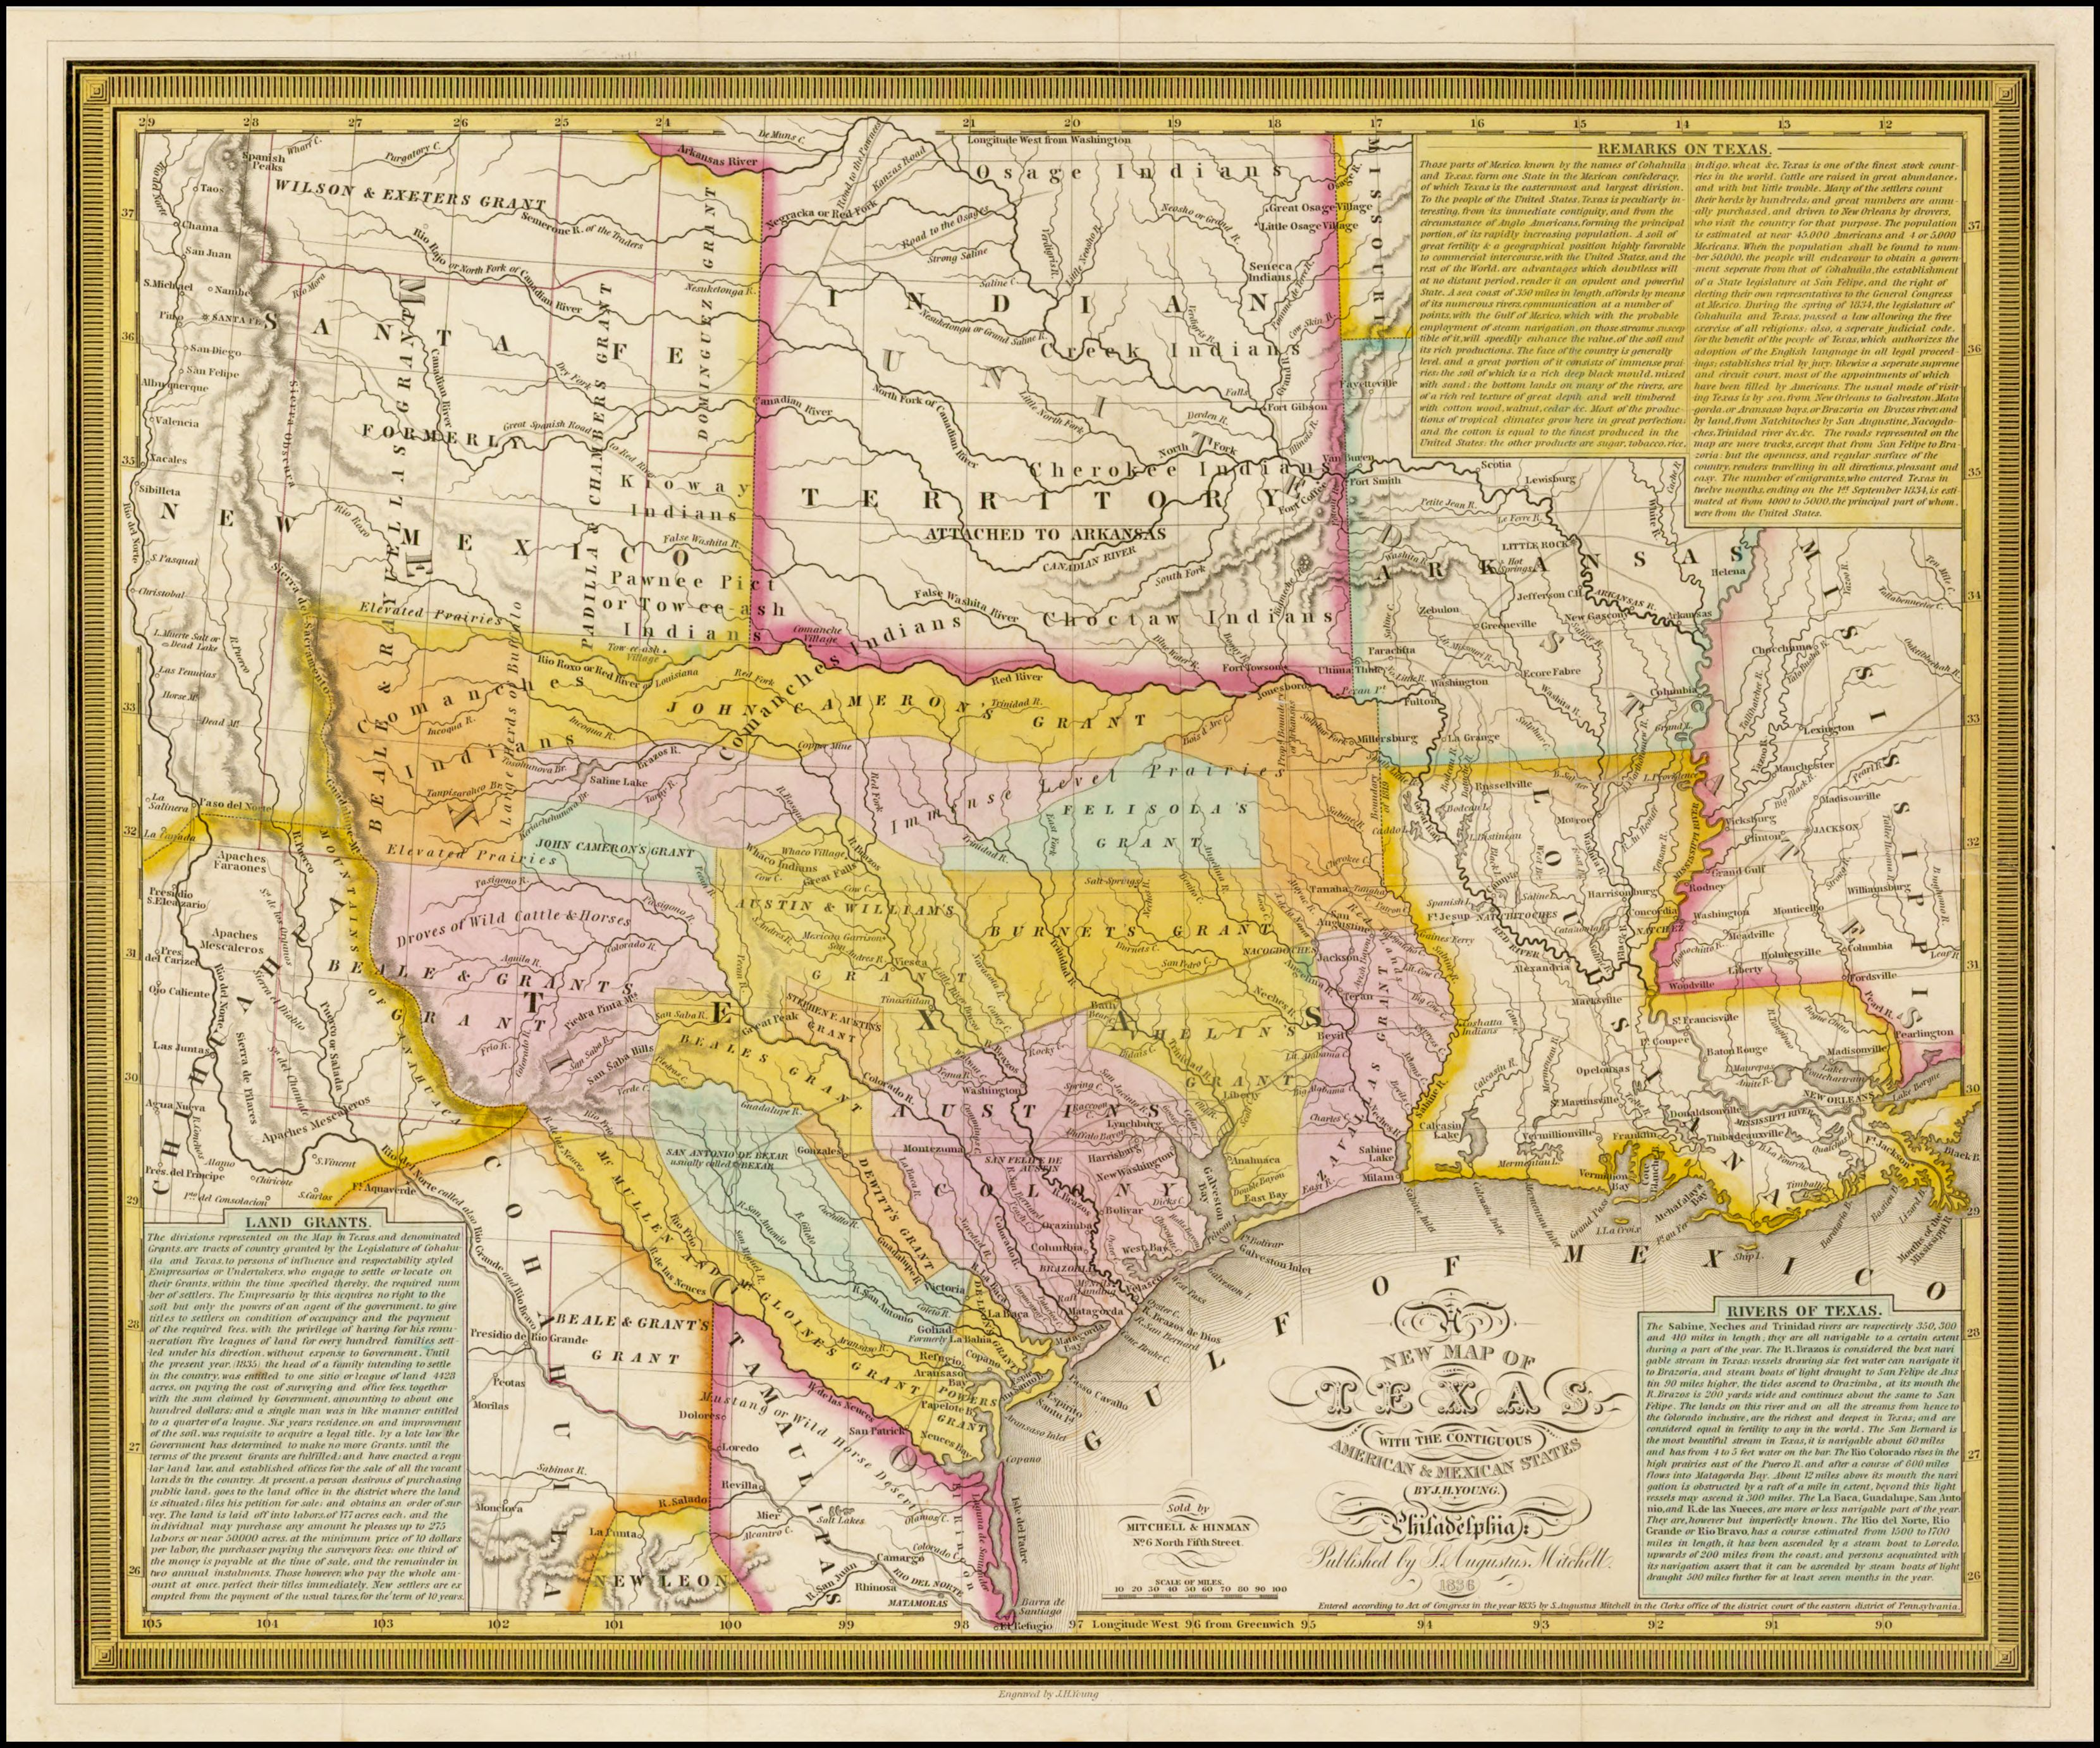 Old Historical City, County and State Maps of Texas on climate map of north texas, origin of texas, physical landform map of texas, streets in el paso texas, henderson tx map texas, world map waco texas, rosharon tx map texas, map with all of texas, map of tx texarkana texas, detailed road map of north texas, blank outline map of the state of texas, map of texas with alice tx, united states citymaps texas, map of arkansas and texas red river, map tx woodlands texas, map of mexico and texas border towns, texas state map of texas, usa state texas, clovis sites map texas, panhandle amarillo texas,